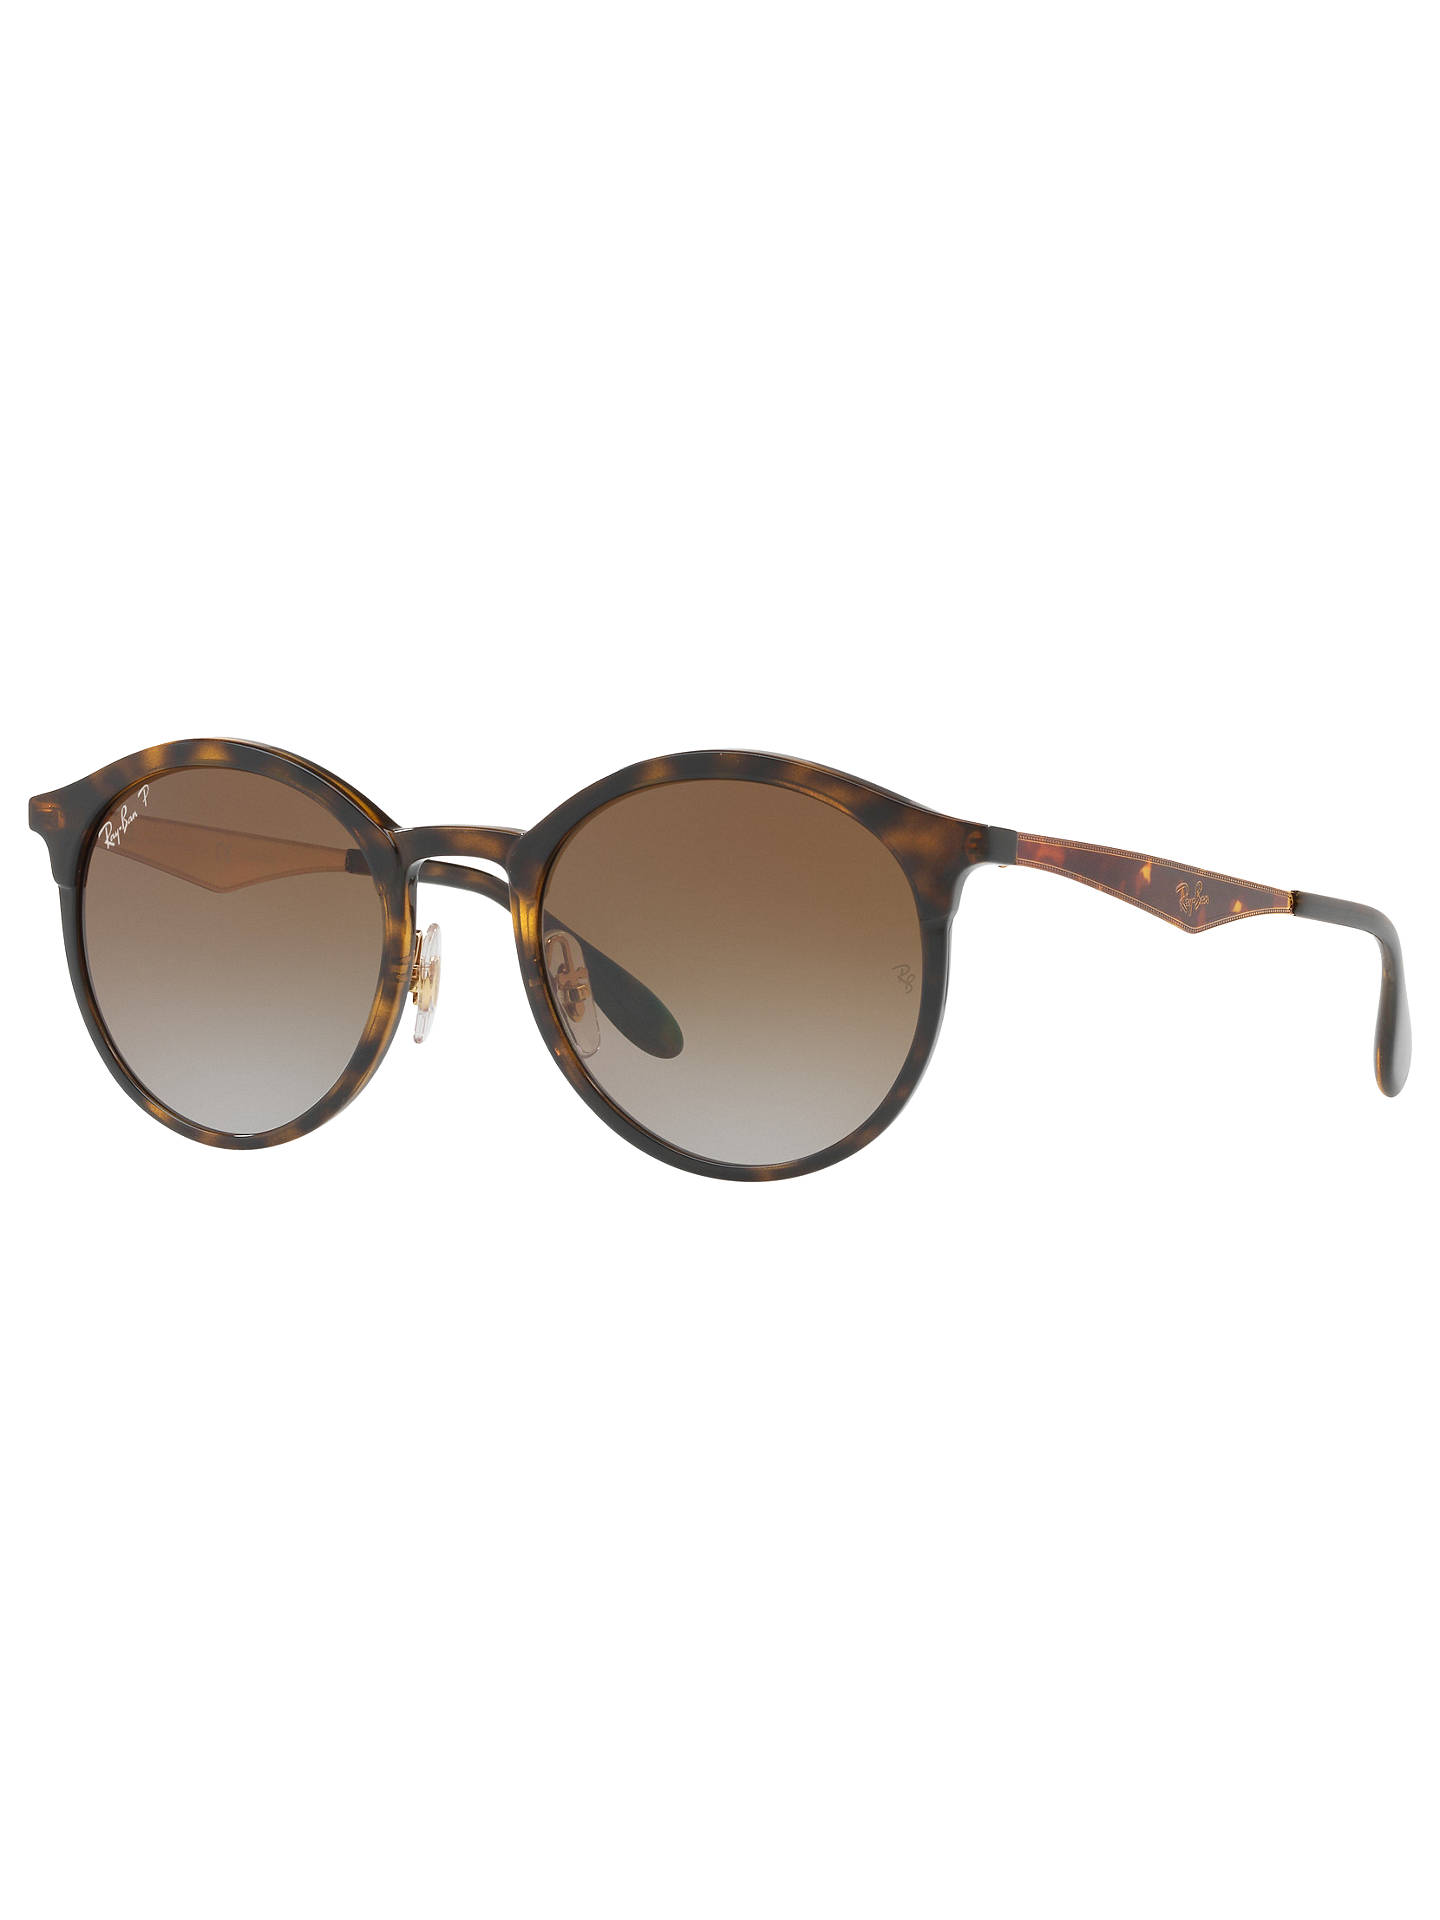 Buy Ray-Ban RB4277 New Emma Polarised Oval Sunglasses, Tortoise/Brown Gradient Online at johnlewis.com